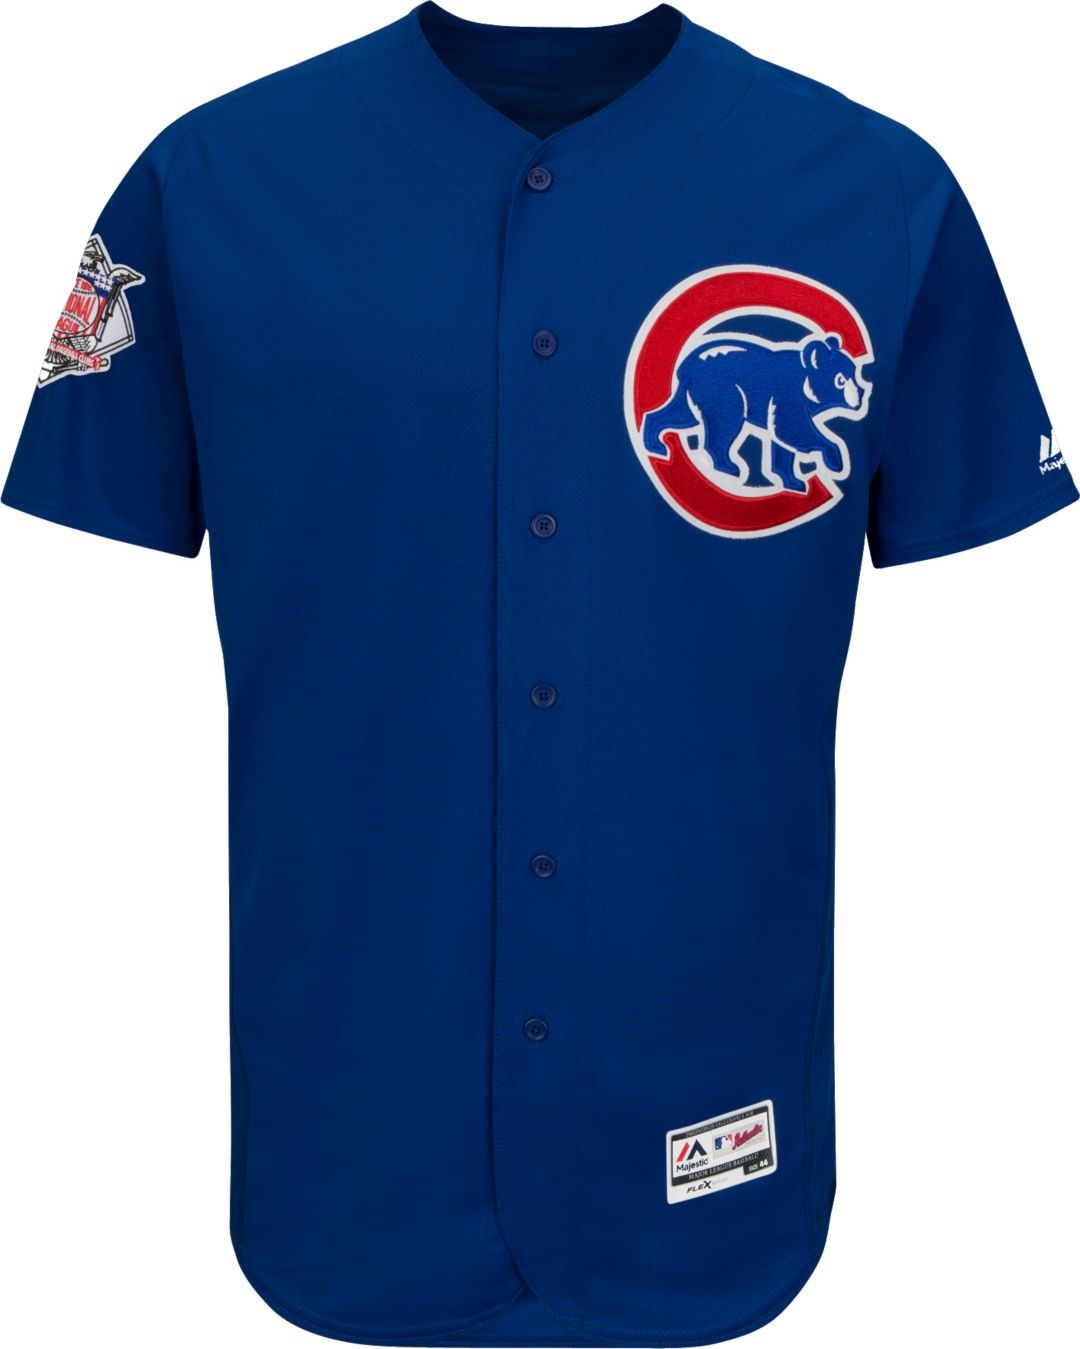 buy online 9963d c51b7 Majestic Men's Authentic Chicago Cubs Anthony Rizzo #44 Alternate Royal  Flex Base On-Field Jersey